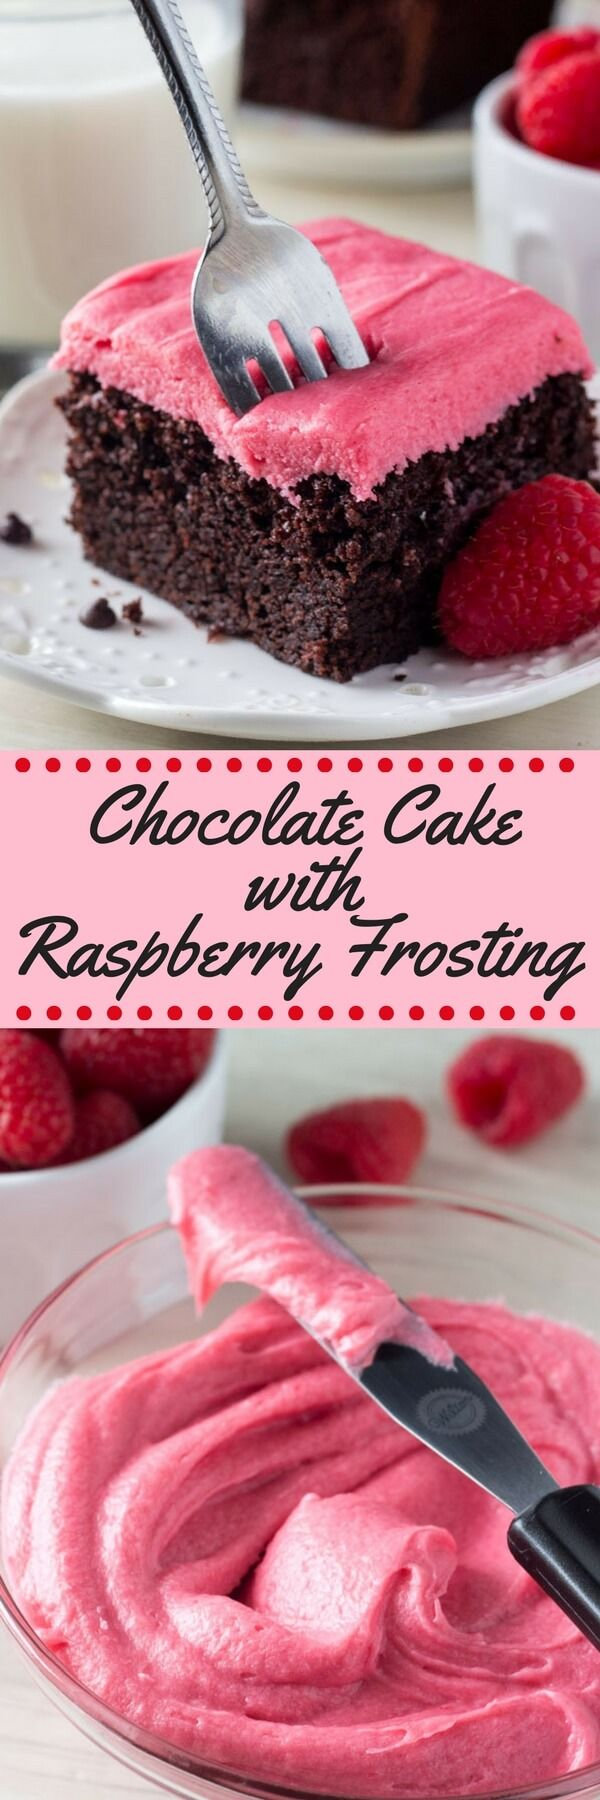 This chocolate cake with raspberry frosting is perfect for Valentine's Day. The soft, moist & super fudgy chocolate cake is to die for. This would be super good with cherry frosting!!!